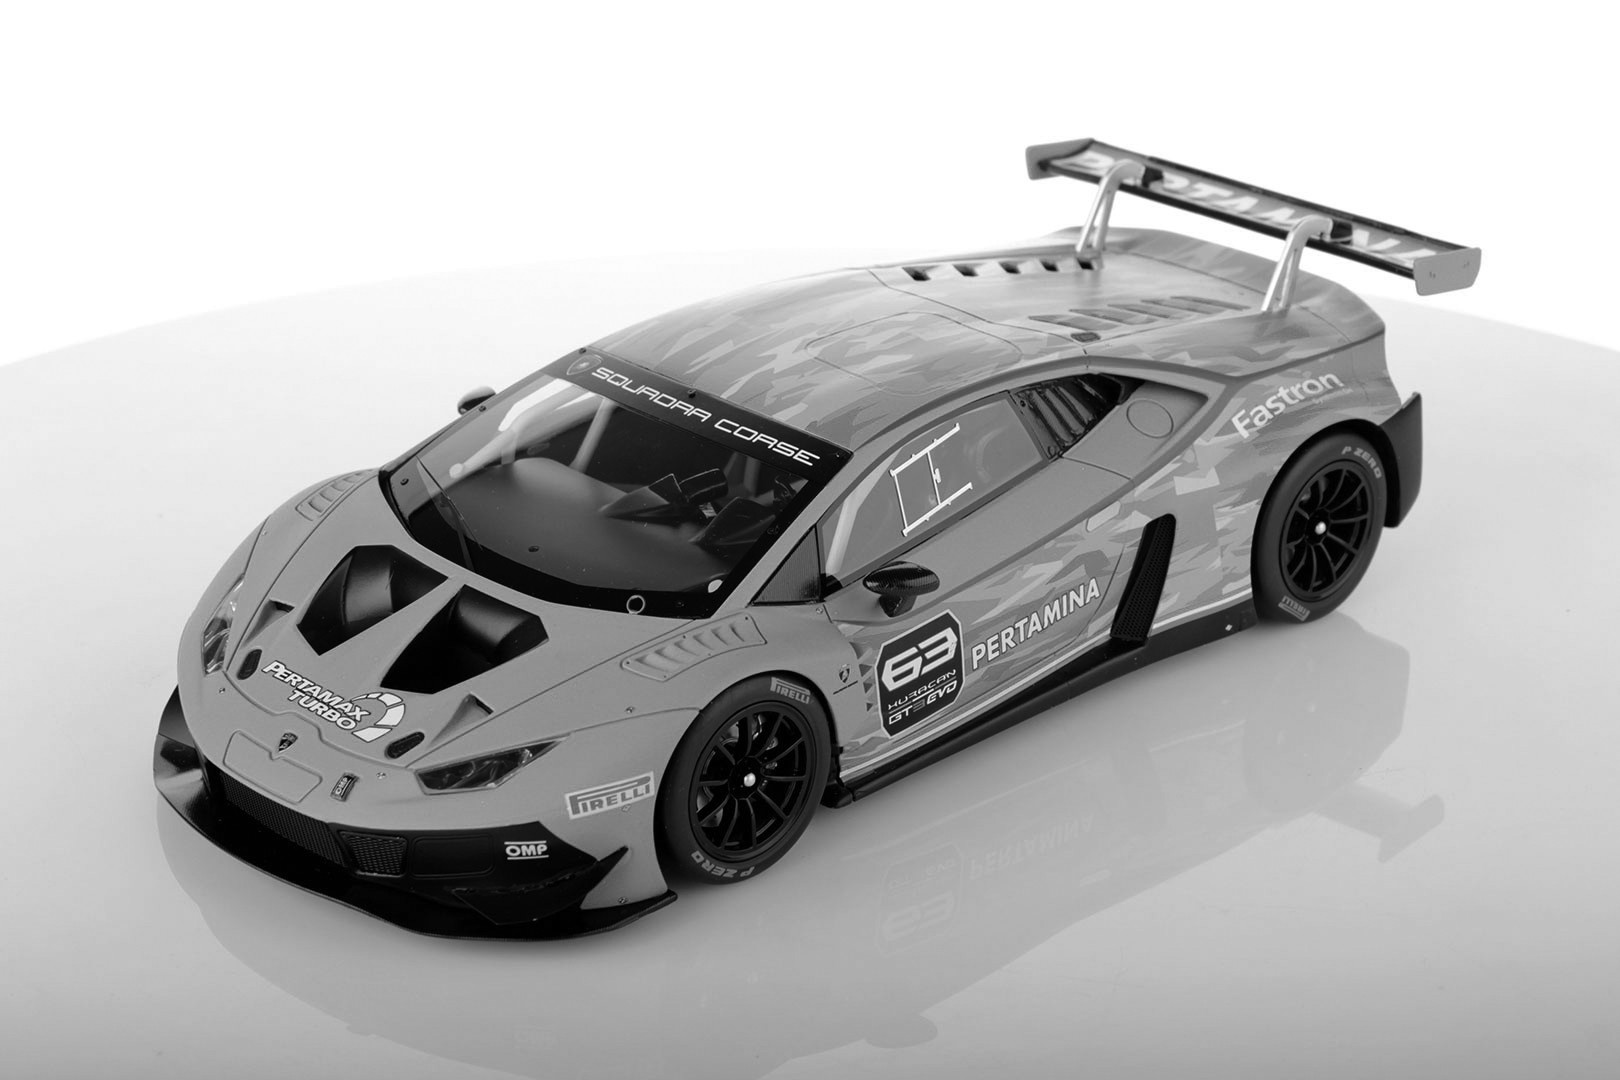 Lamborghini Huracan Gt3 Evo Matt Green Without Racing Livery